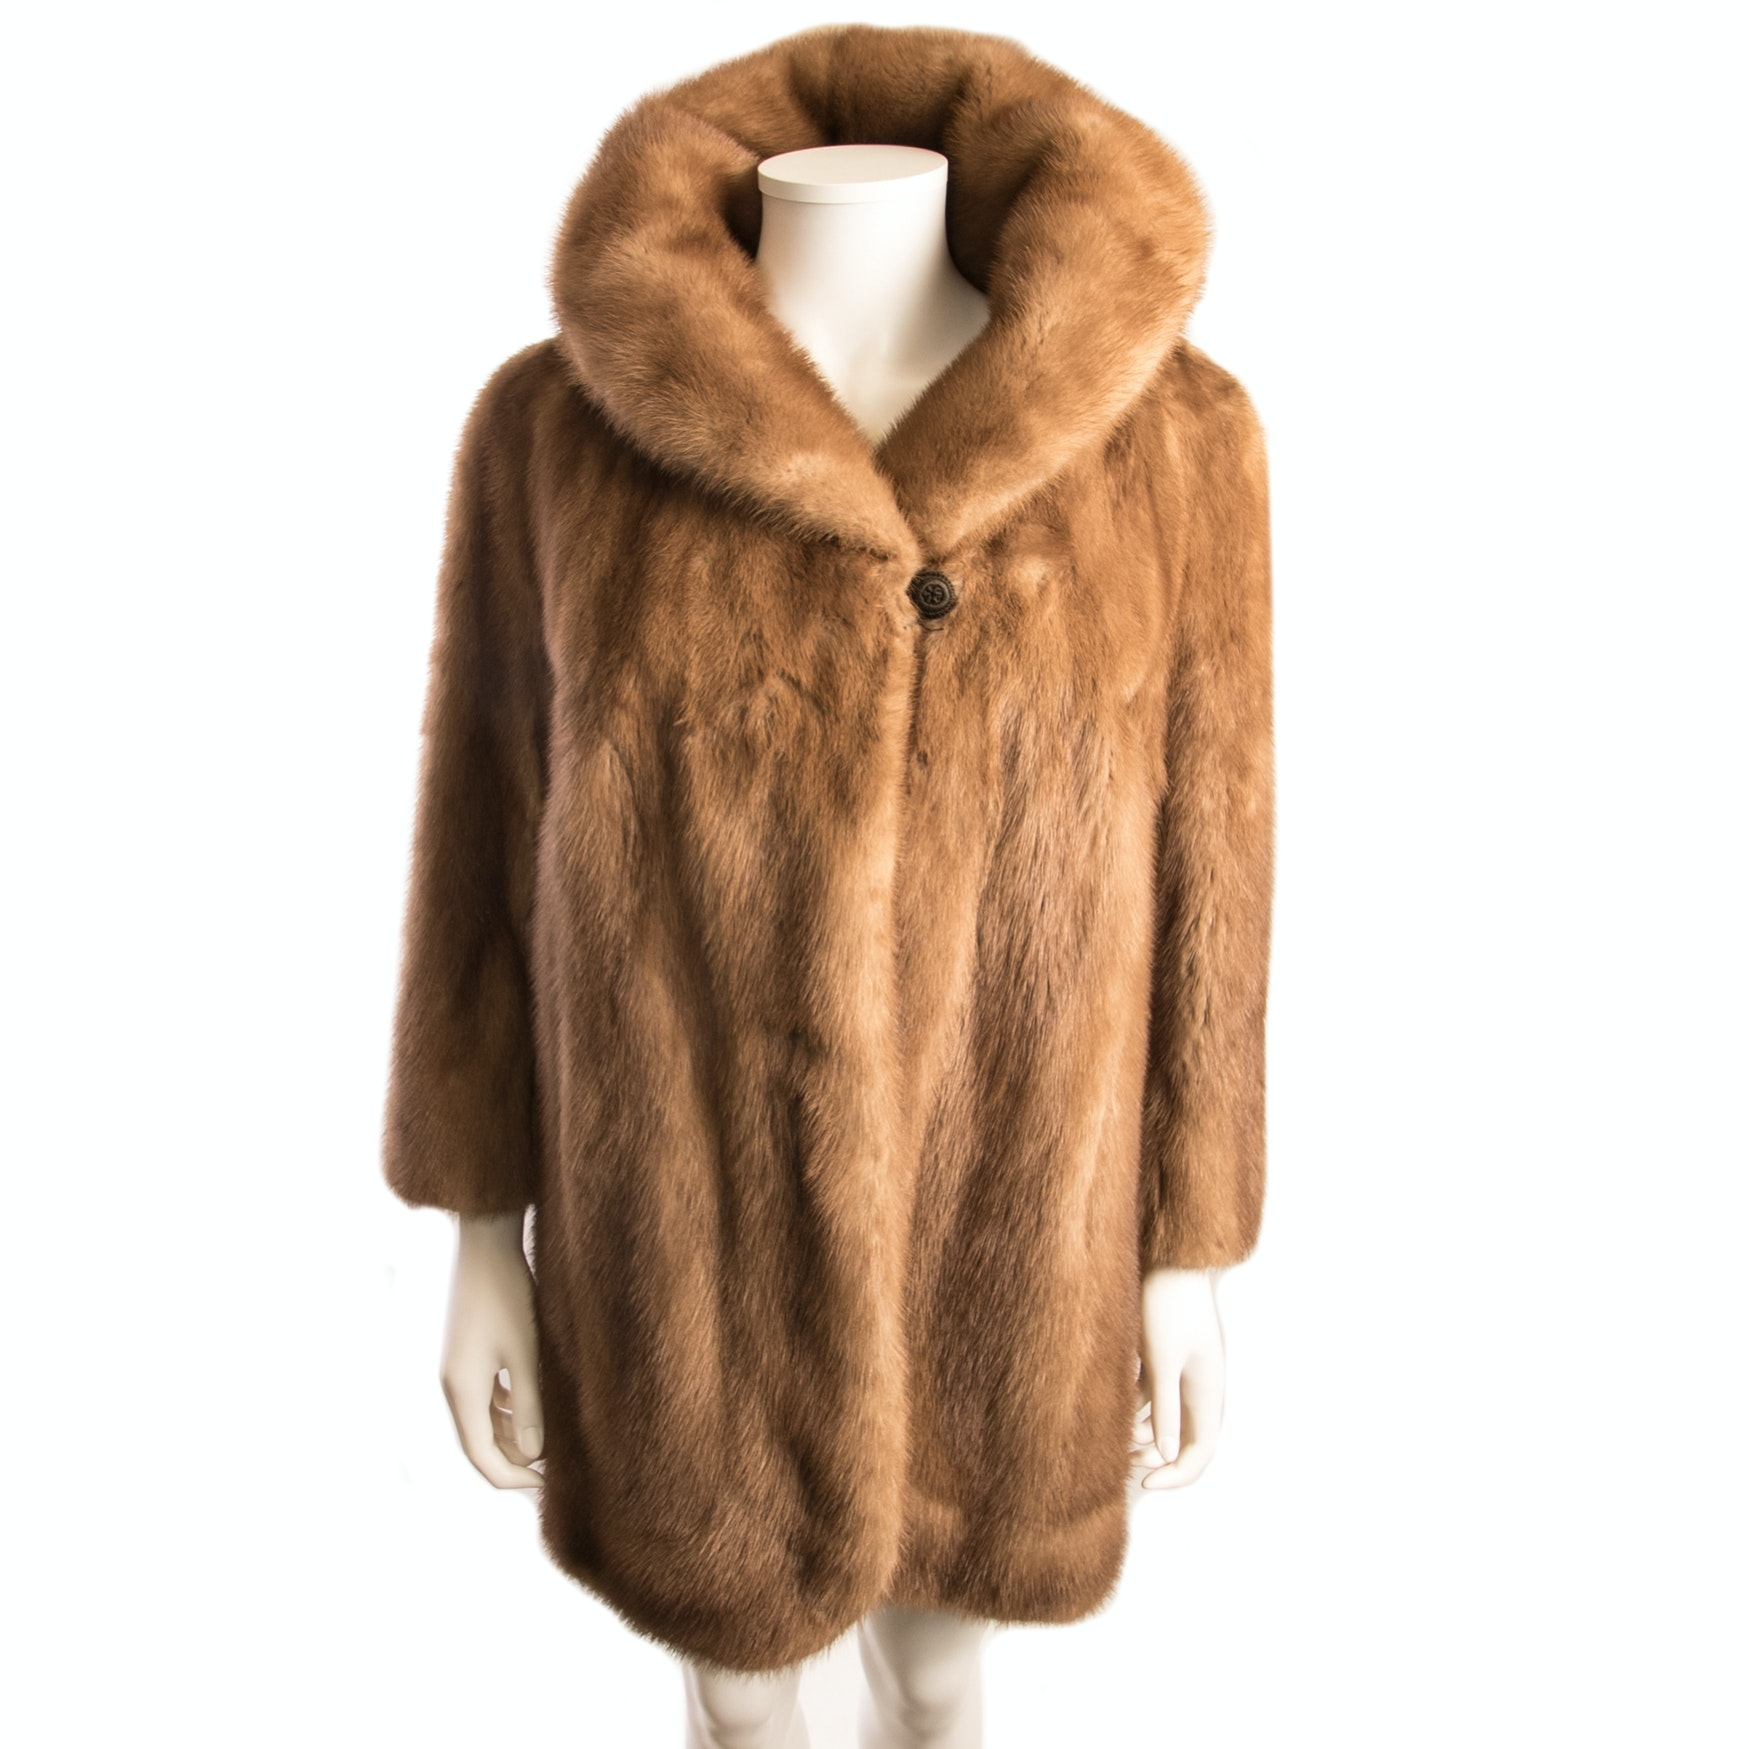 EMBA Pastel Natural Mink Fur Coat